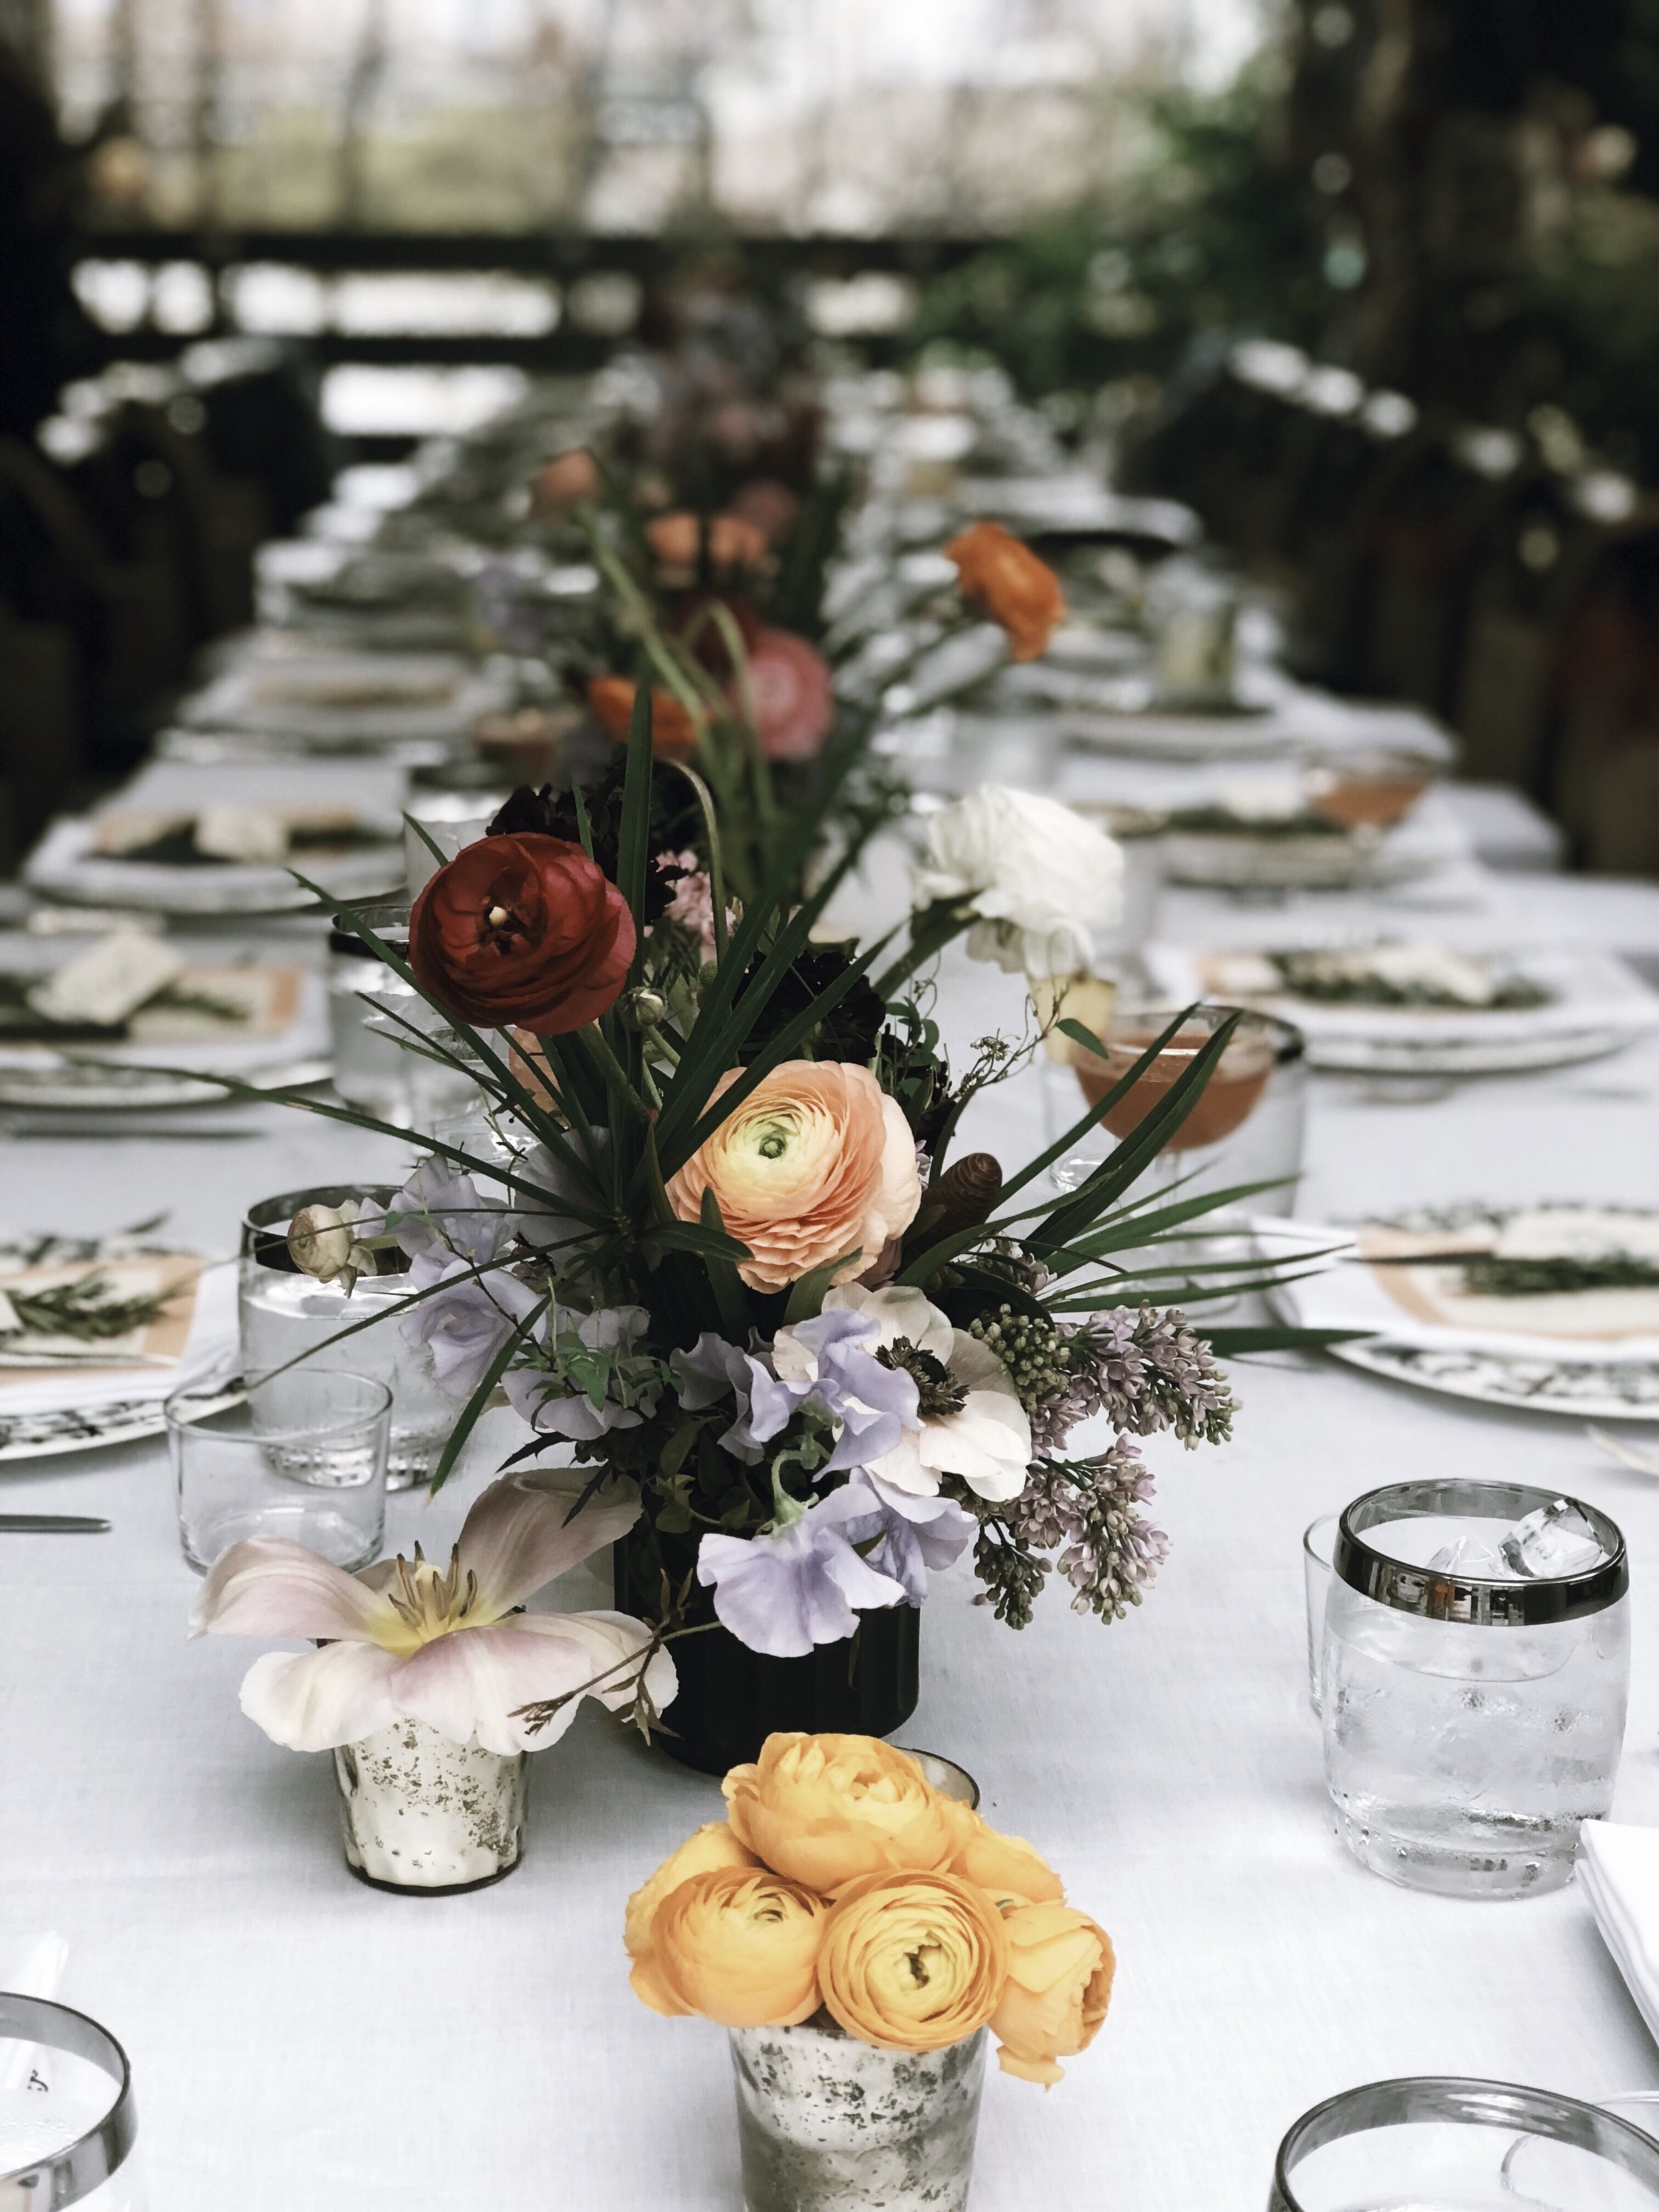 Patricio of Twelve Thirty Four Flowers created stunning arrangements to outfit the terrace dinner tablescape.